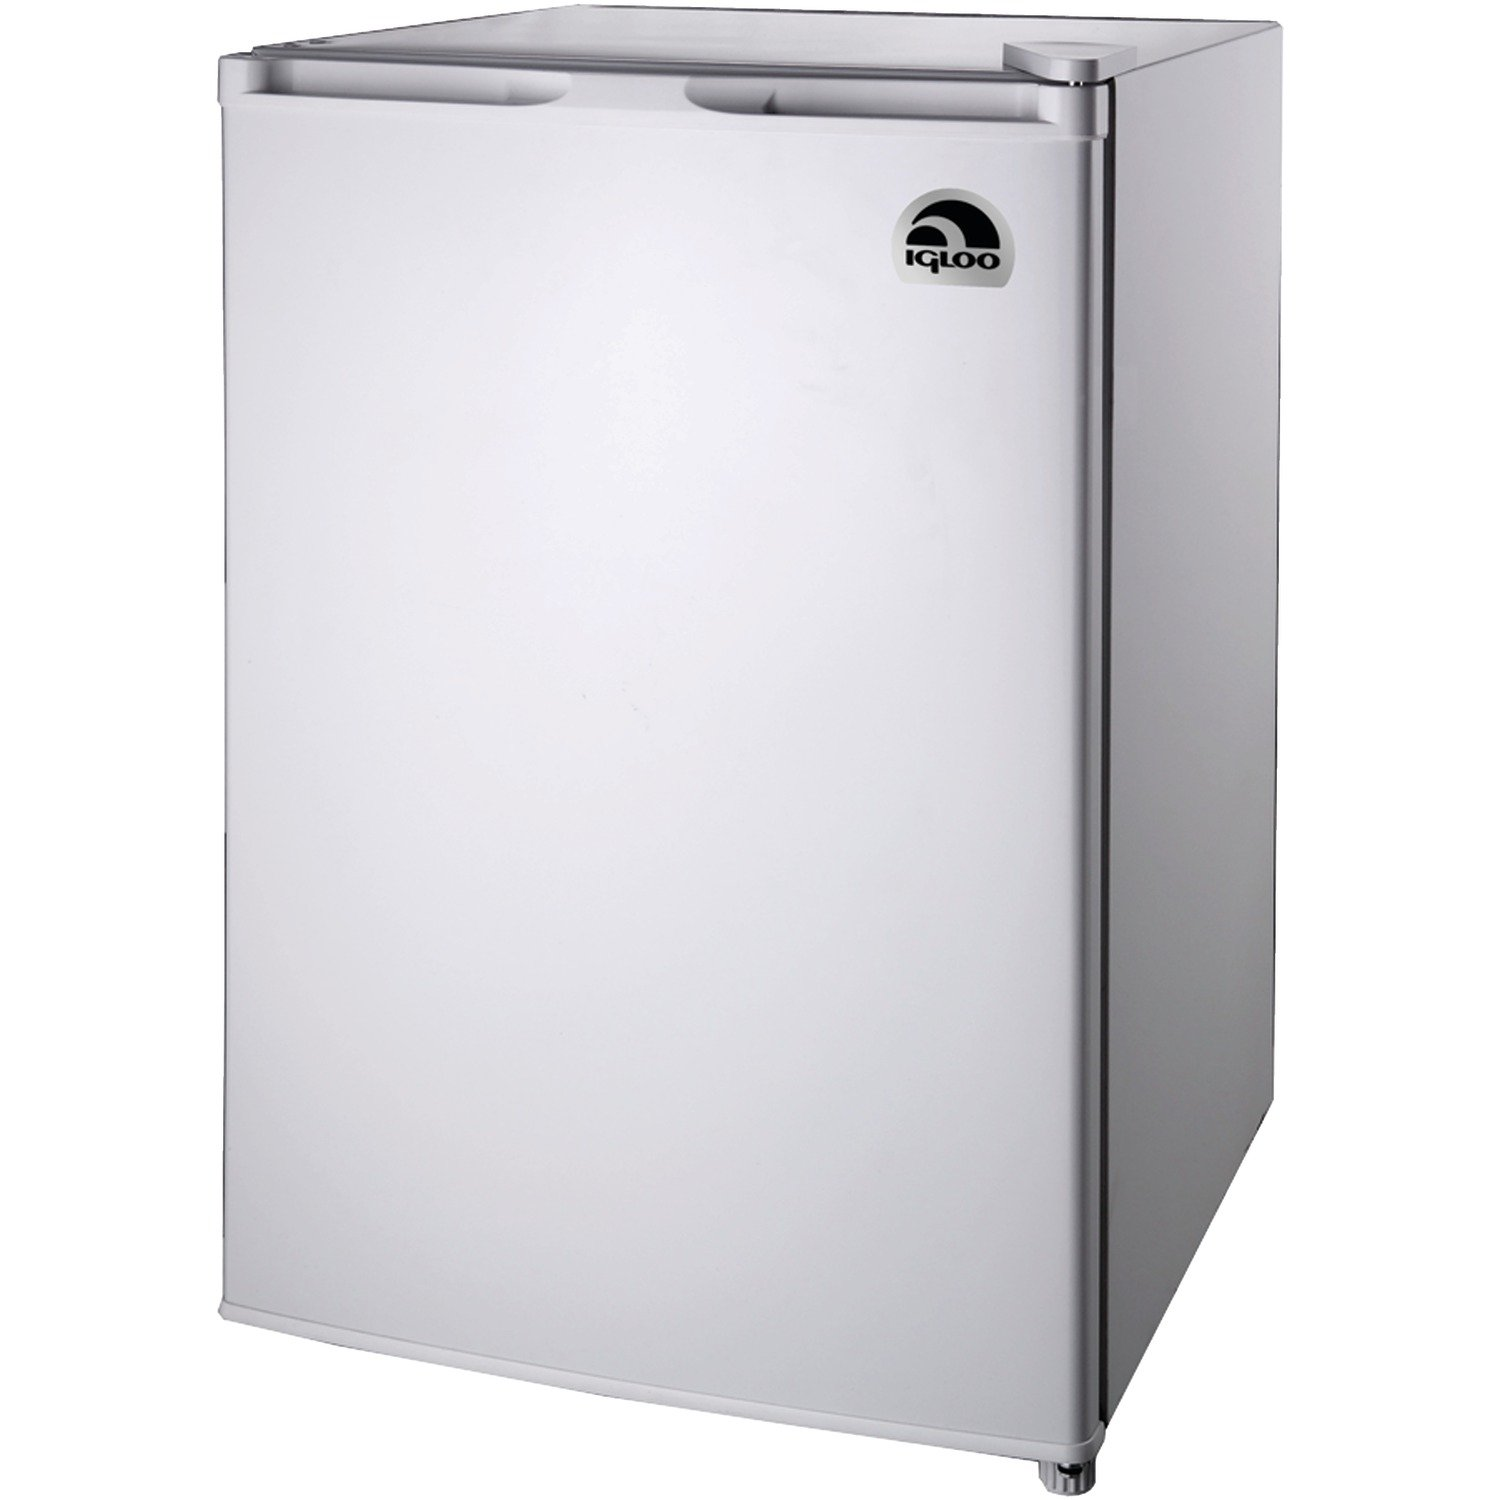 Beautiful Igloo 10 Cu Ft Refrigerator Netbakers Site